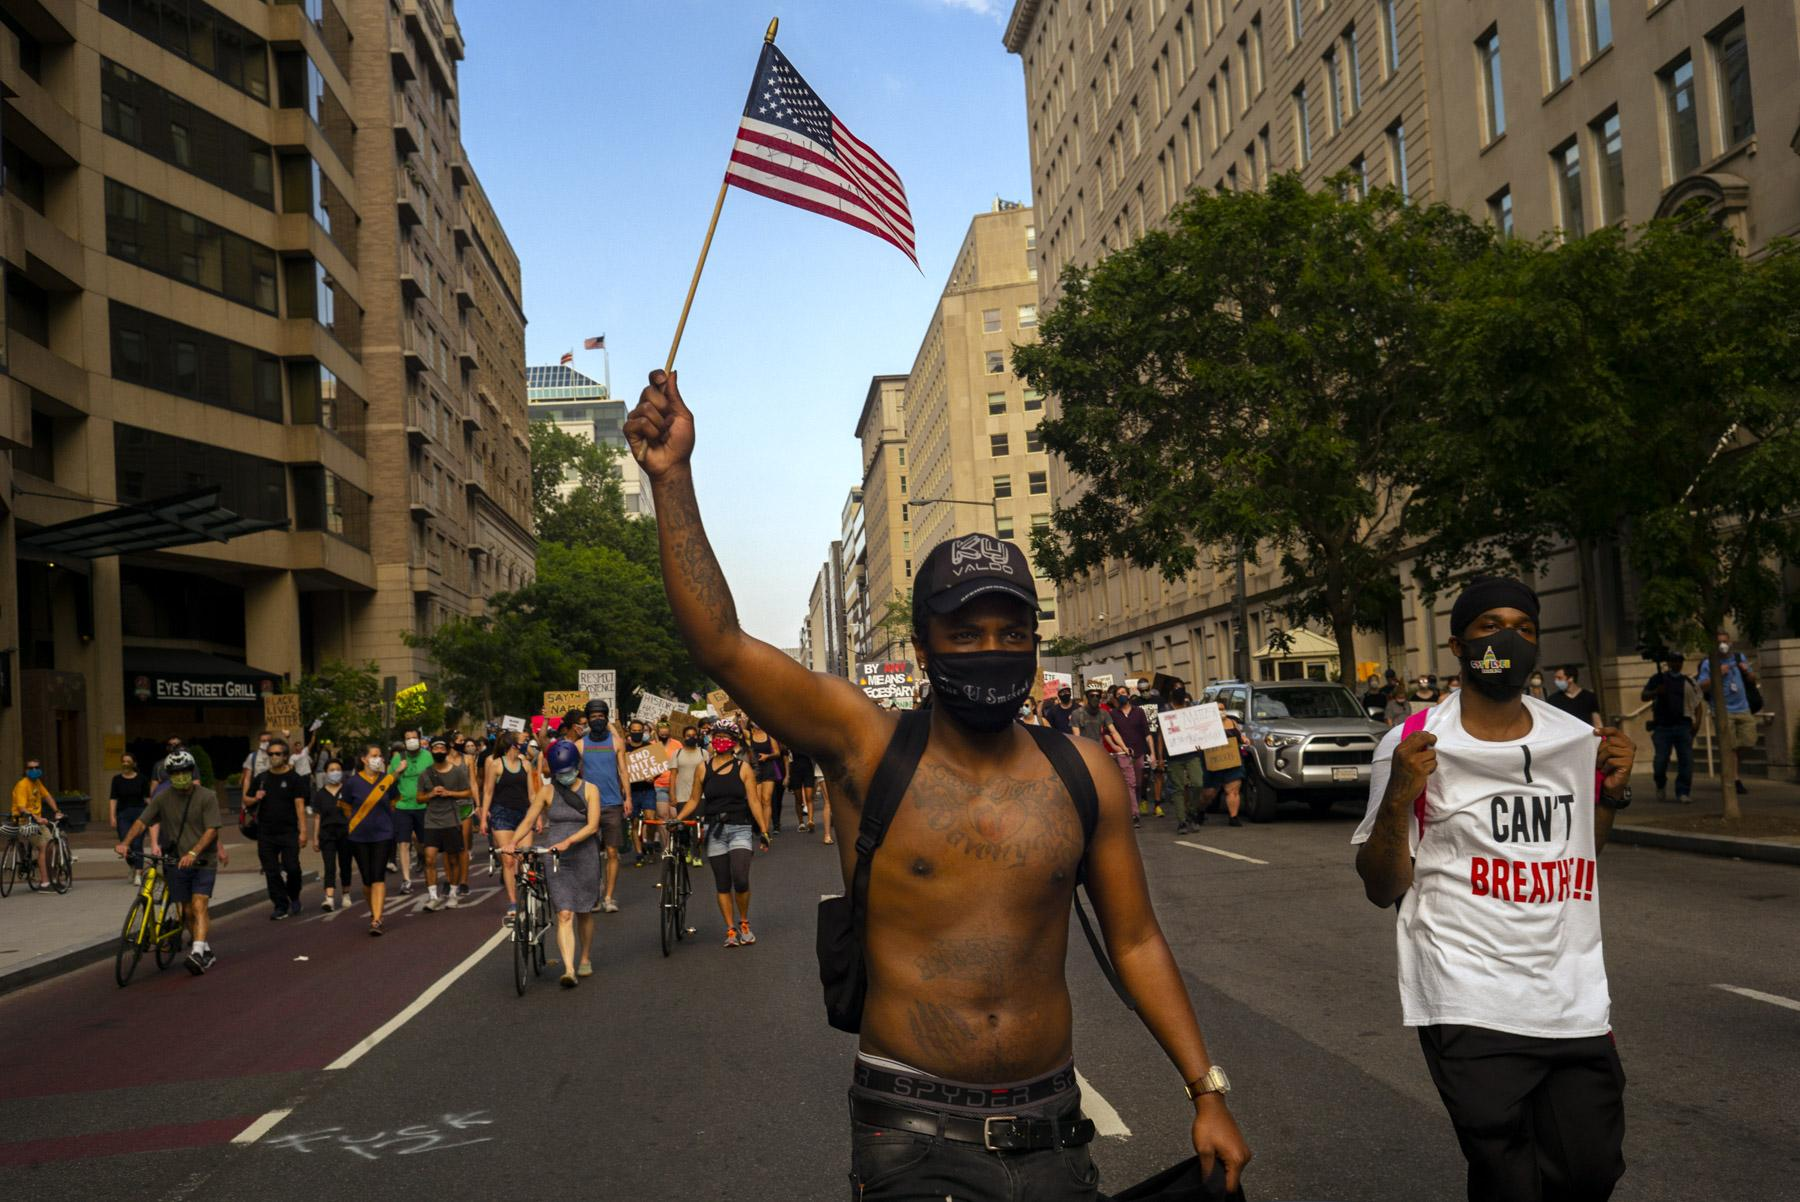 Protesters go from Farragut Square to BLM Plaza.